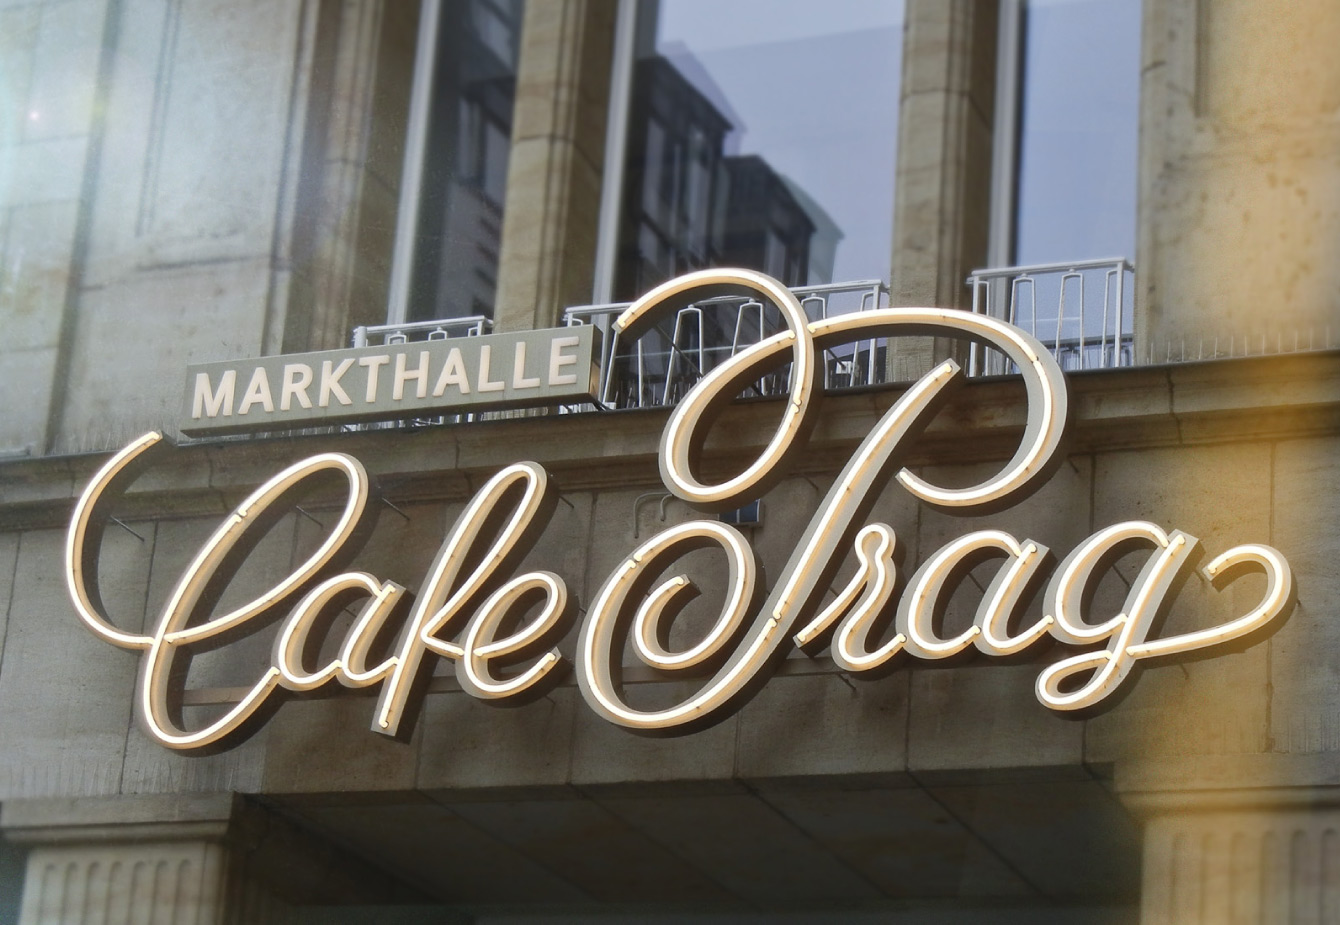 market hall, cafe prag, dresden, produce me, redesign, gastronomic, overwork, modification, lettering, brand, custom type, logo, historic, typographic, Jakob Runge, Type-Job, optical sizes, energetic, swashes, swirls, corporate, design